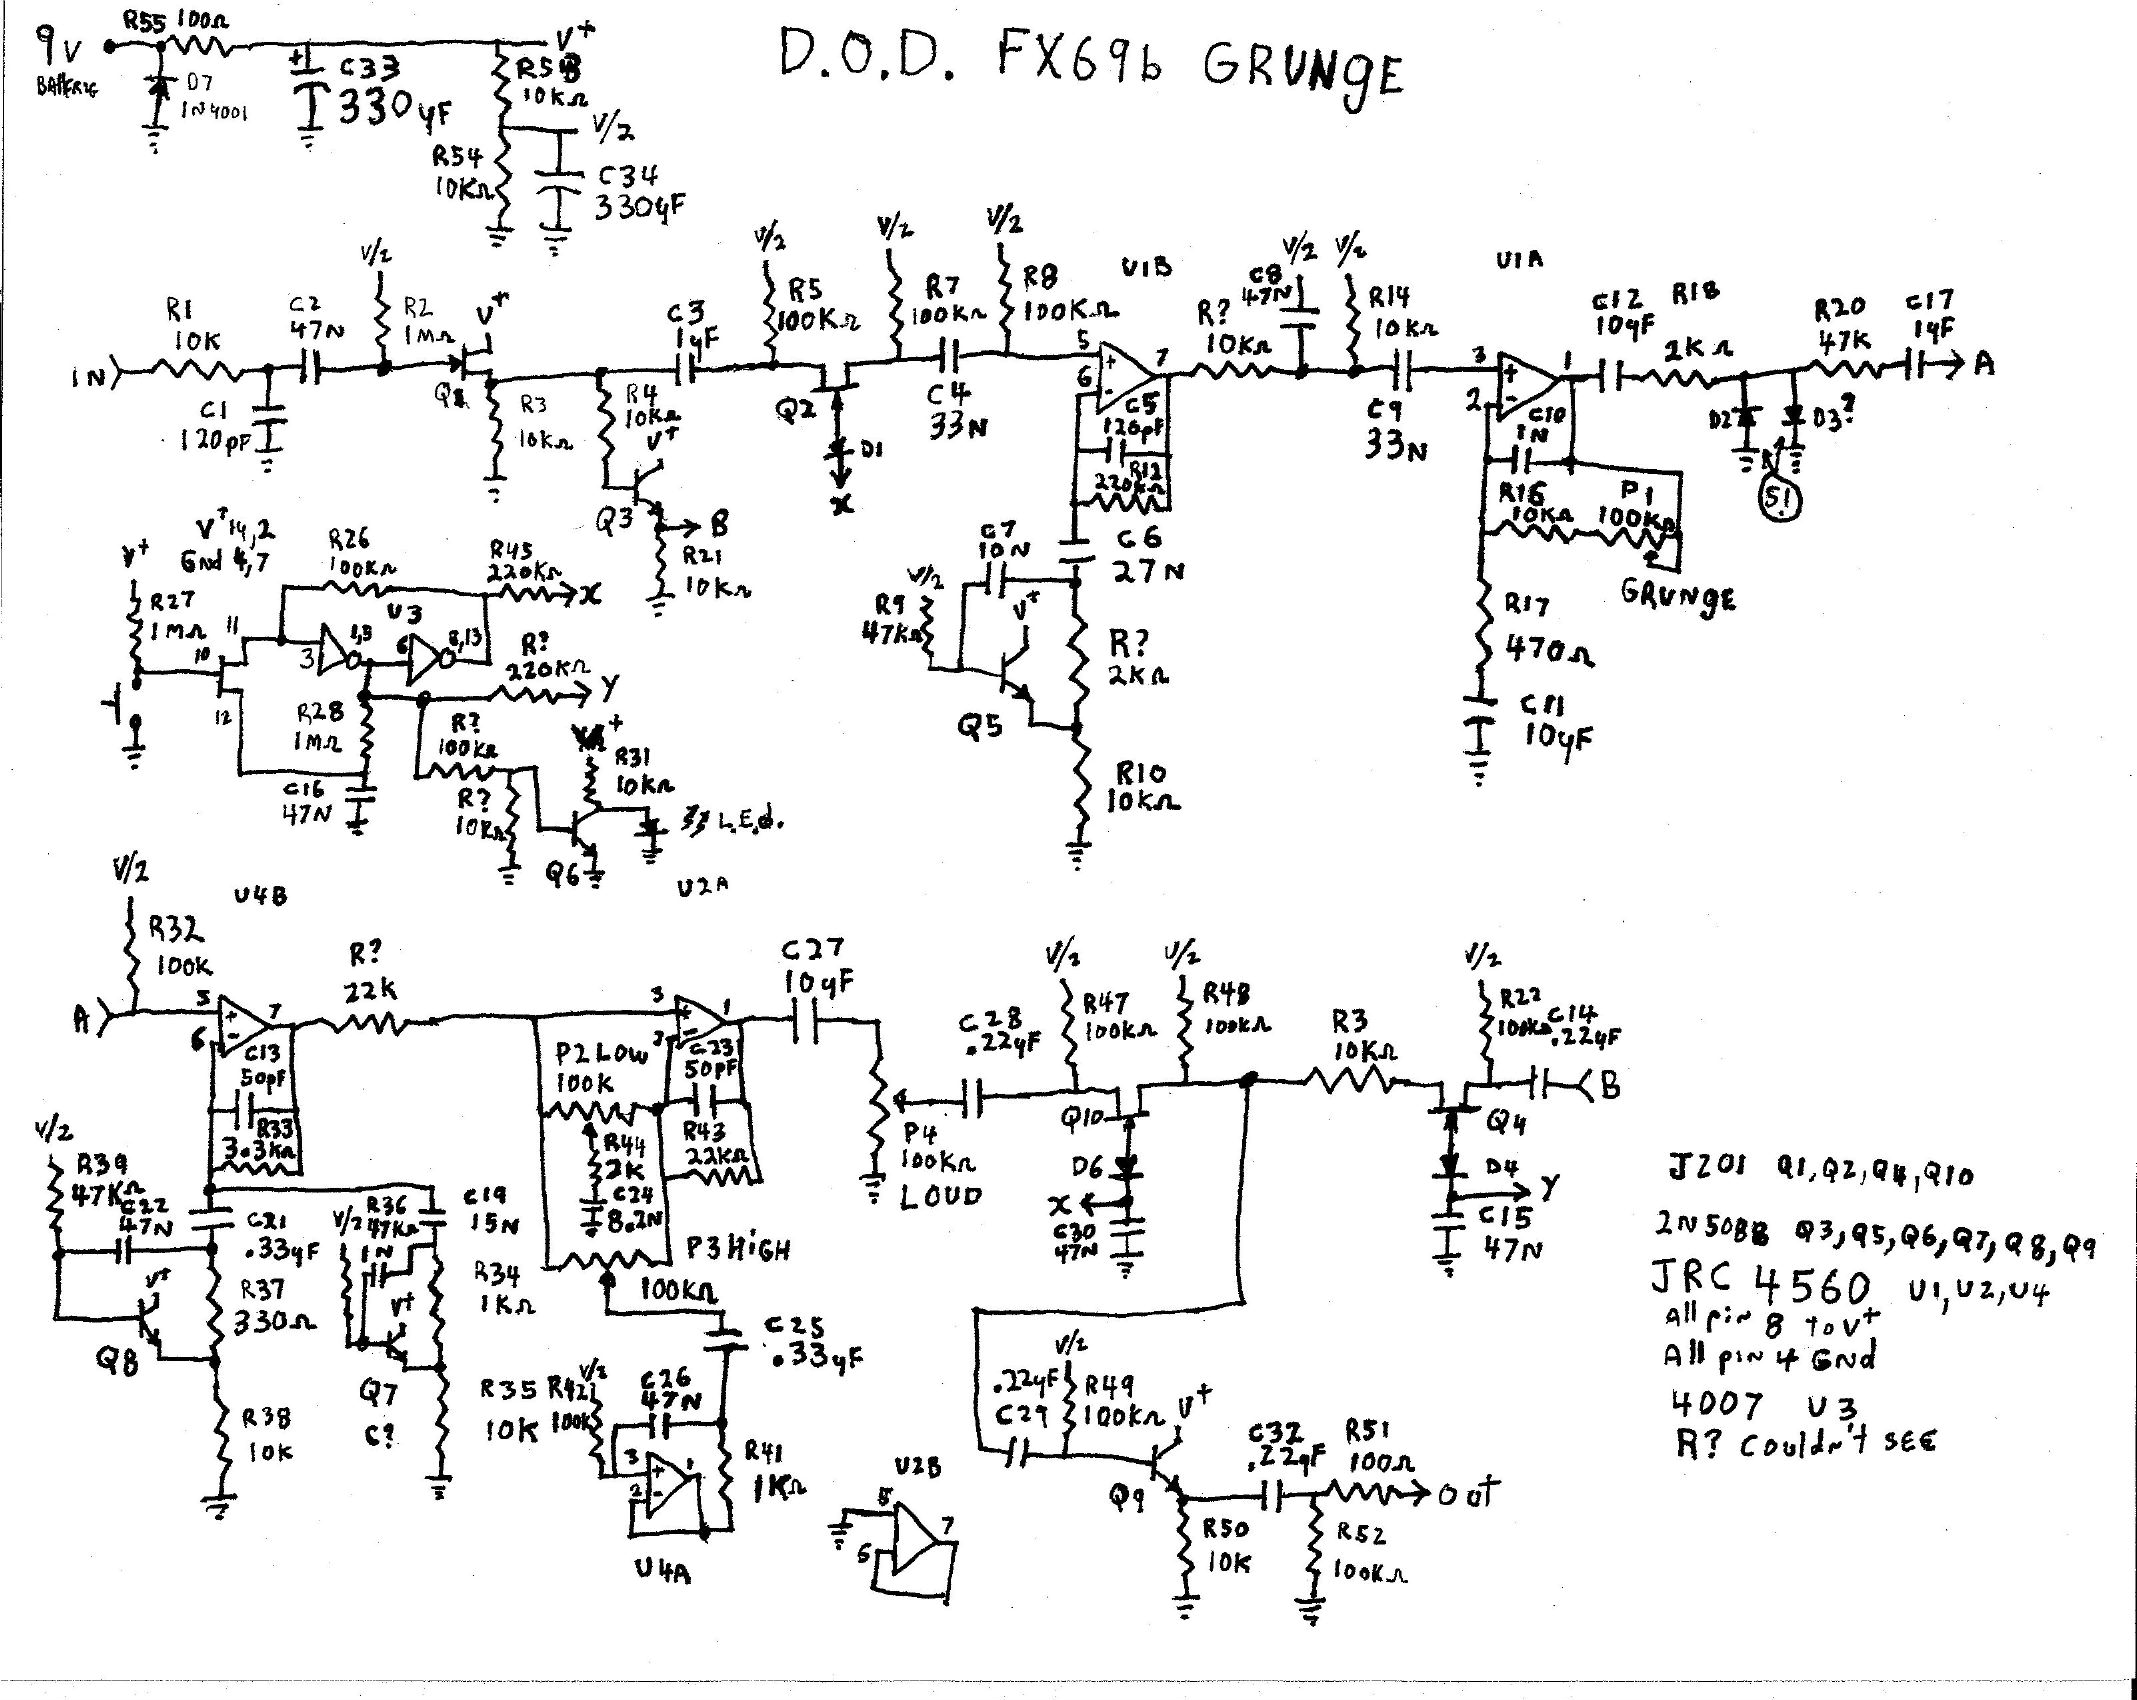 Selected Schematics Wah Pedal Wiring Diagram Fx69 Grunge